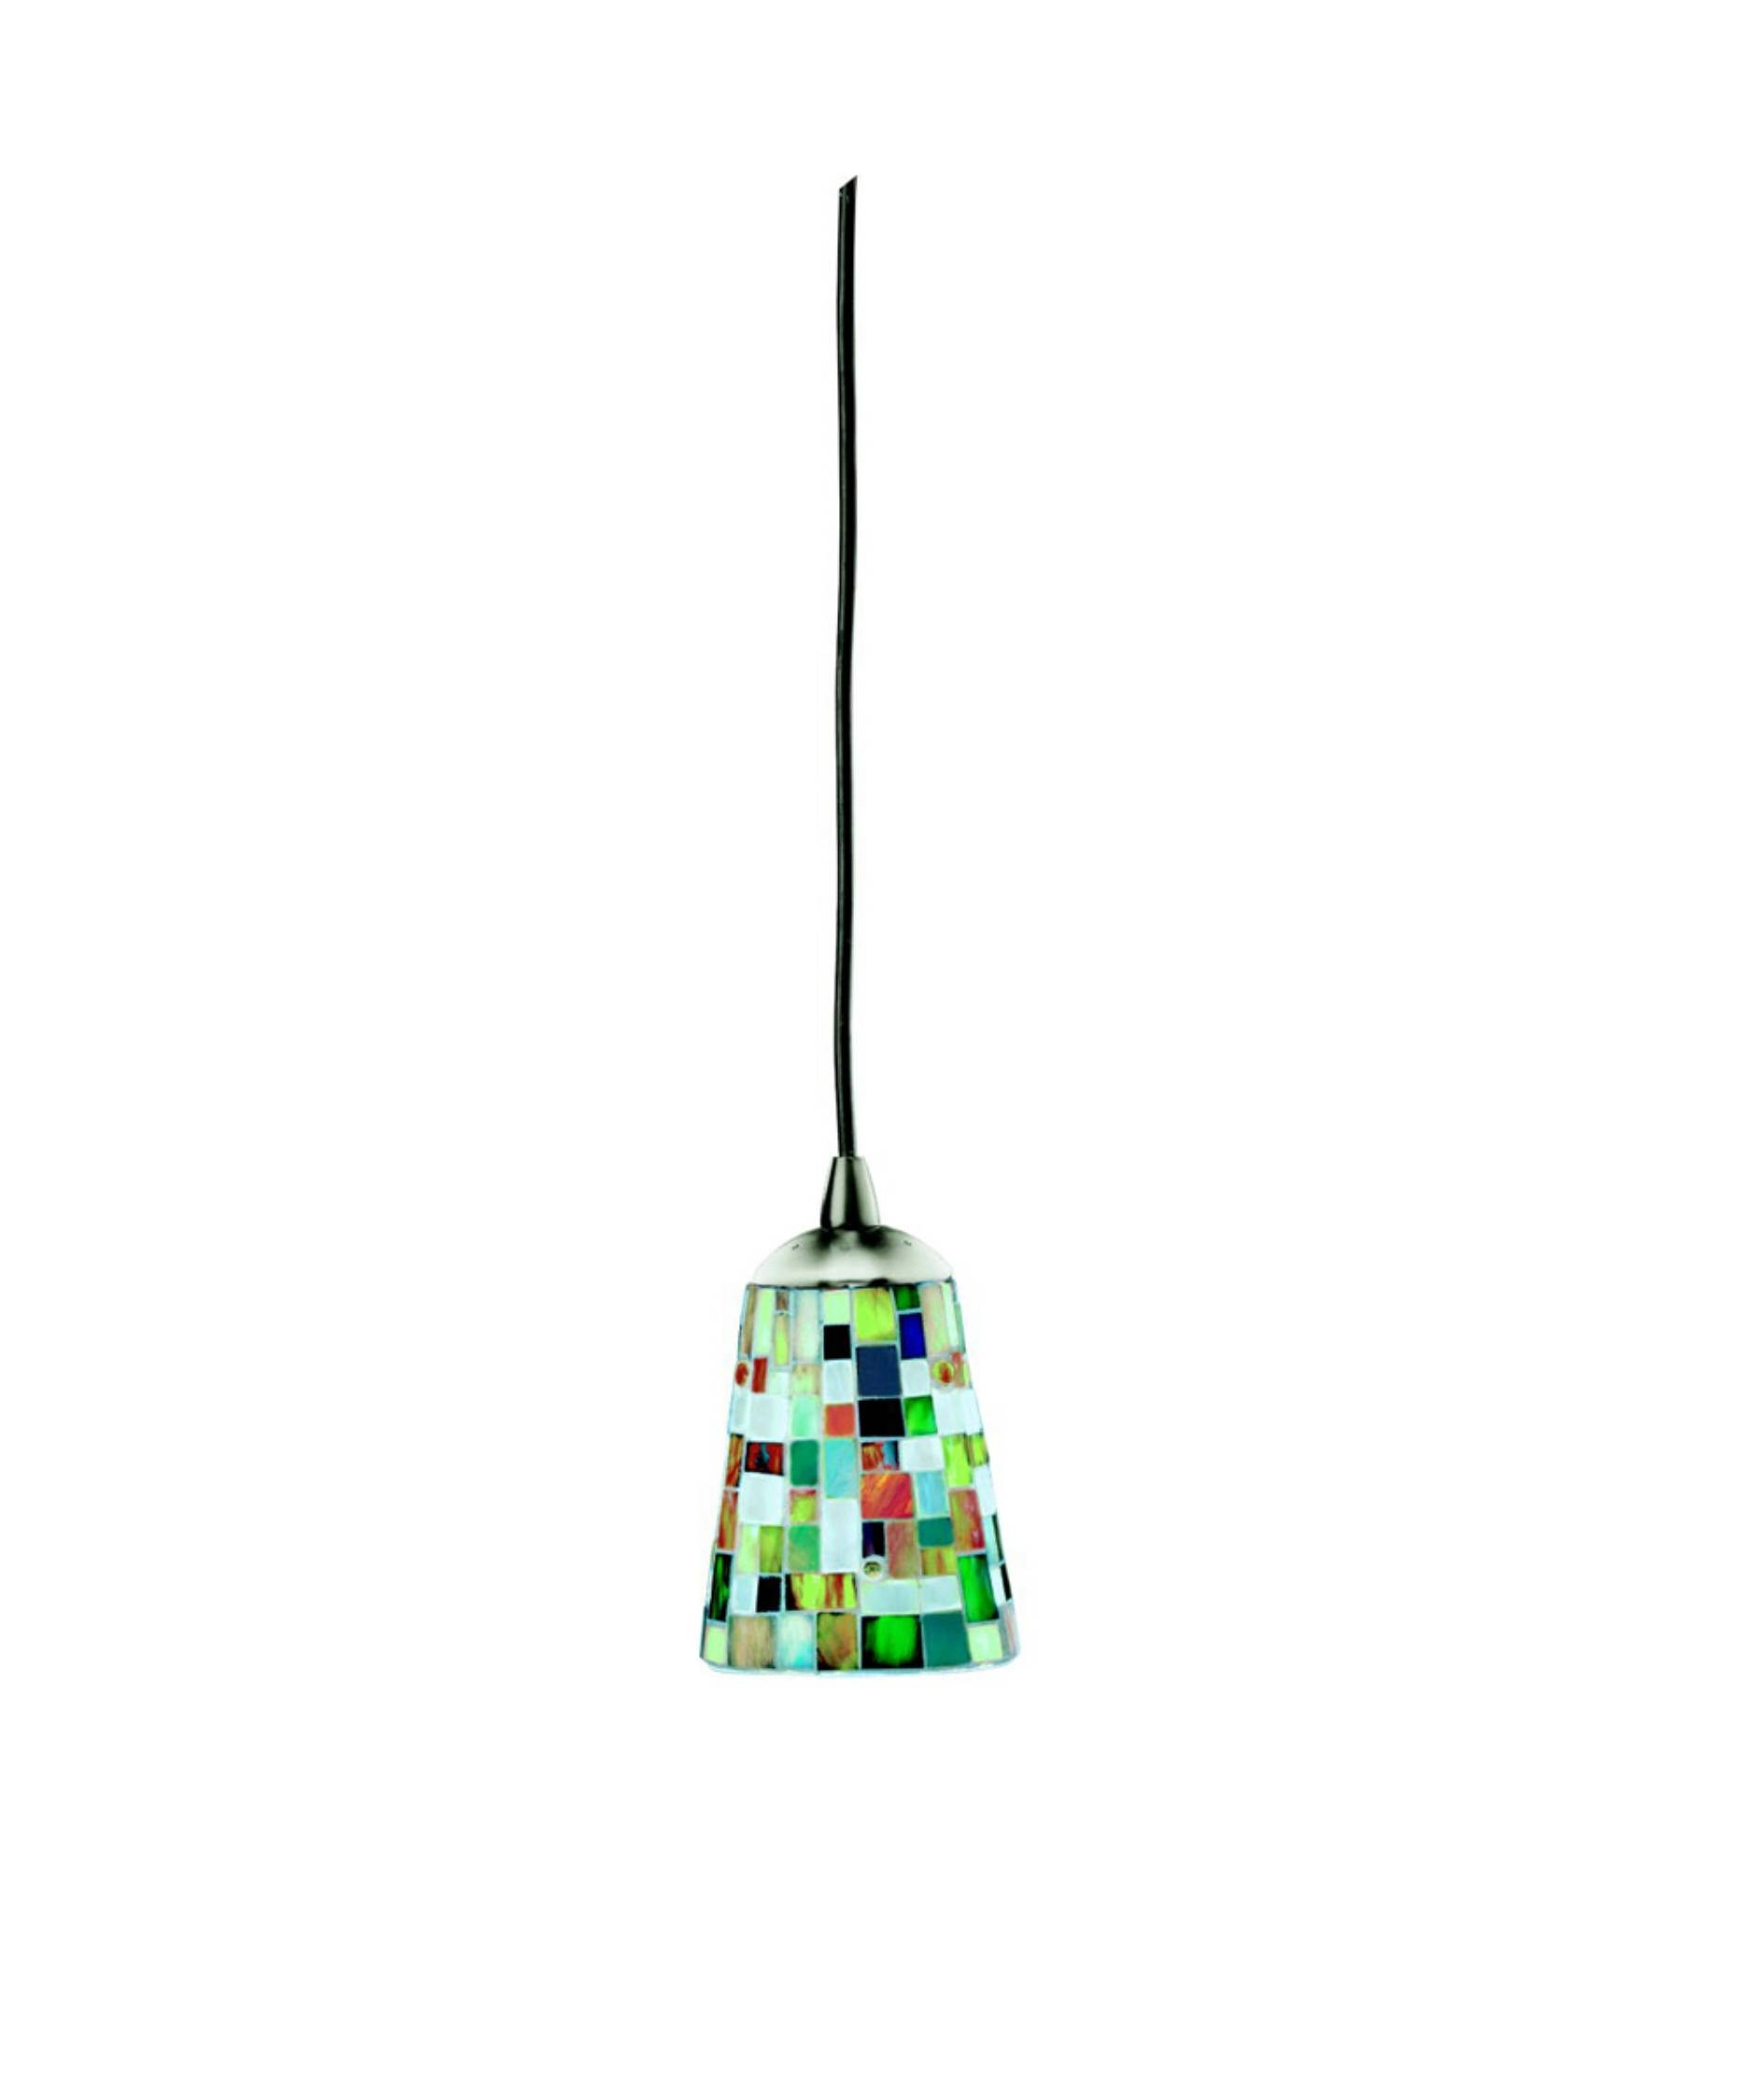 Stained Glass Pendant Light – Baby Exit Regarding Stained Glass Pendant Lights (View 8 of 15)